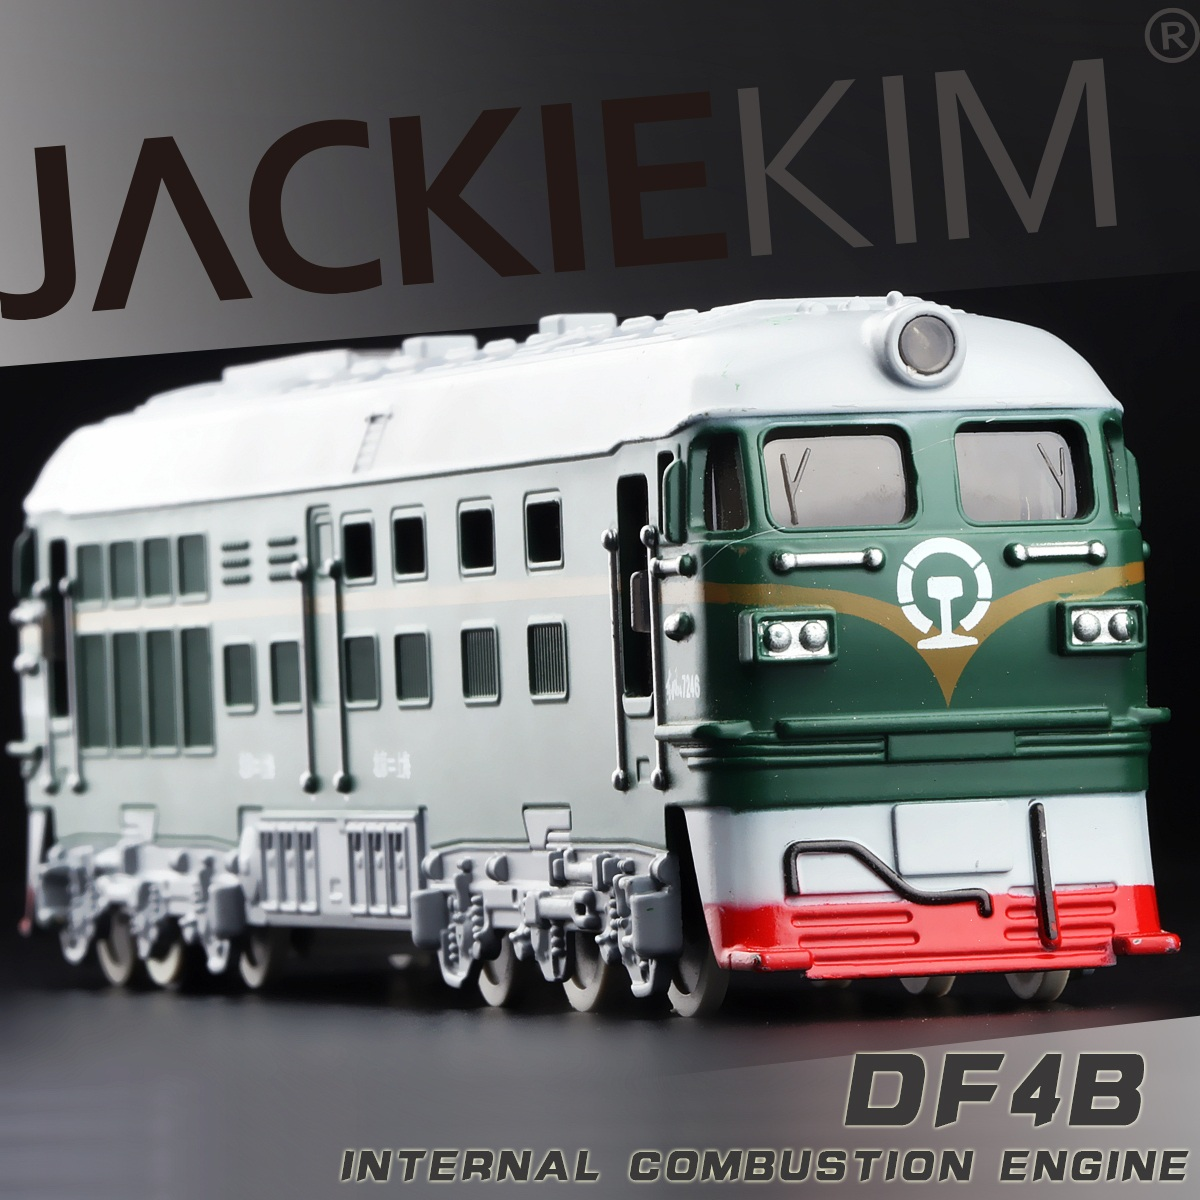 1:87 4B Diesel Engine Pull back Train Model Toy Classic Children's toys Diecasts Toy Vehicles Christmas Gift free shipping